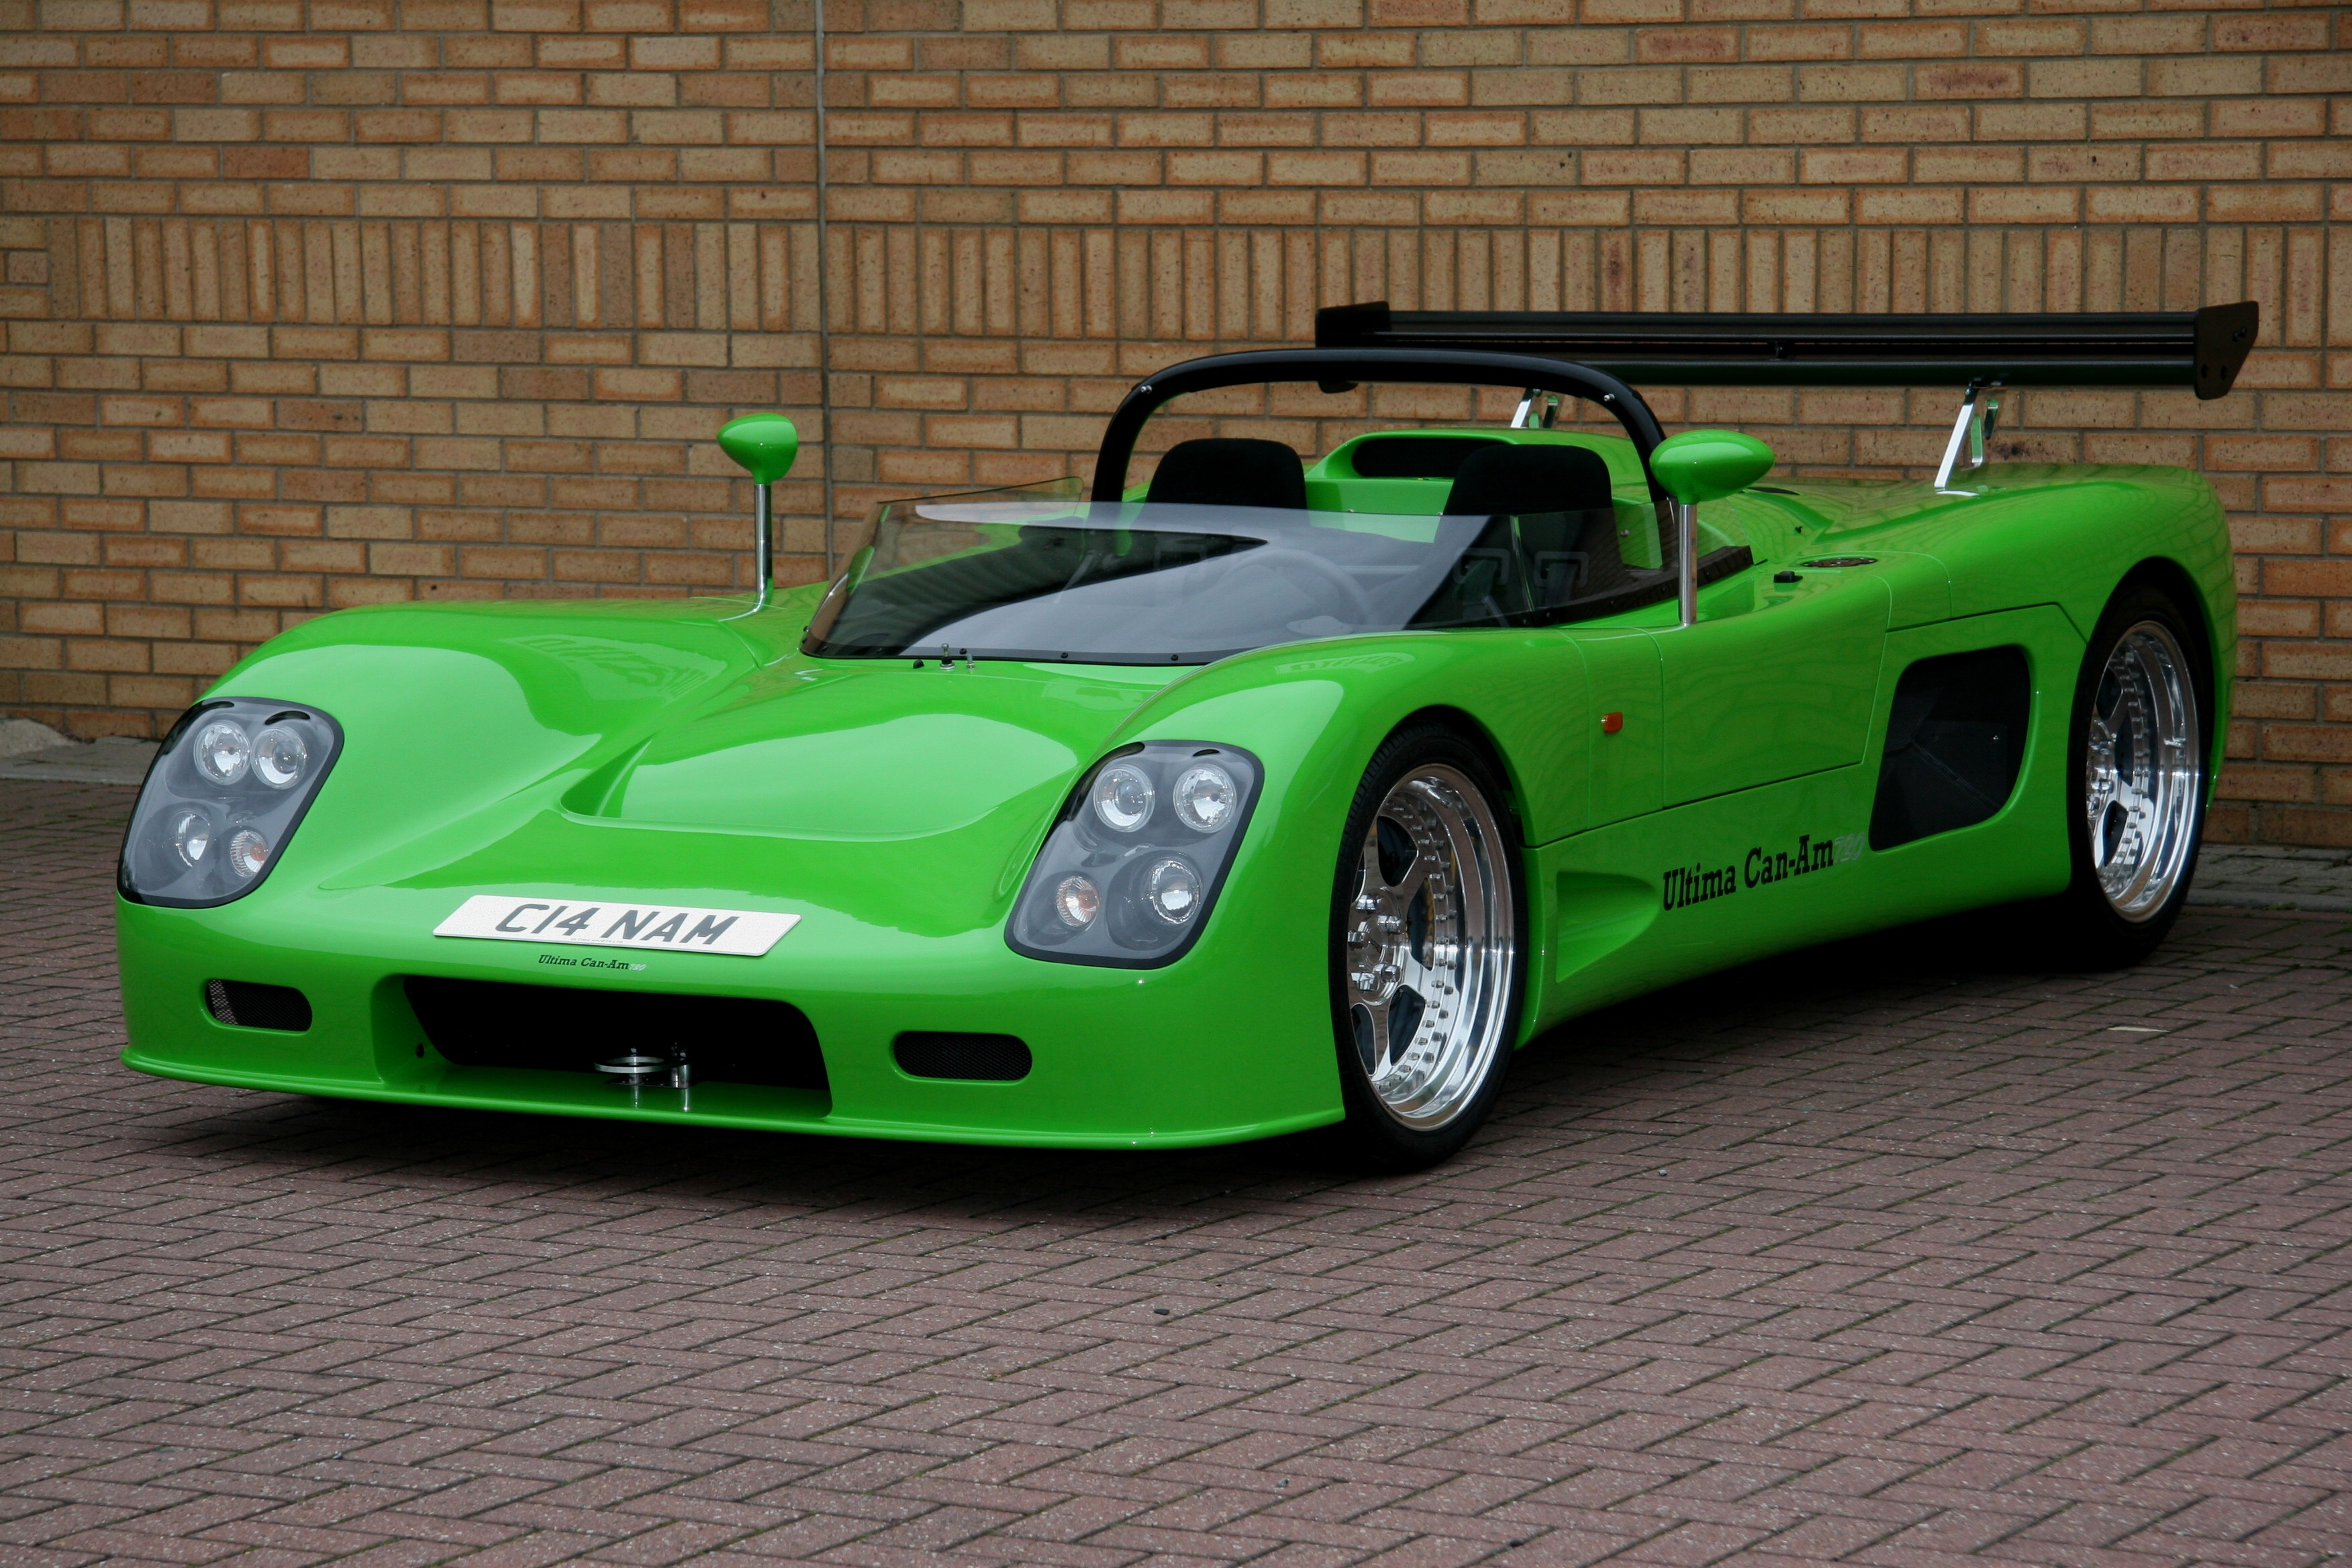 Ultima can-am photo - 6